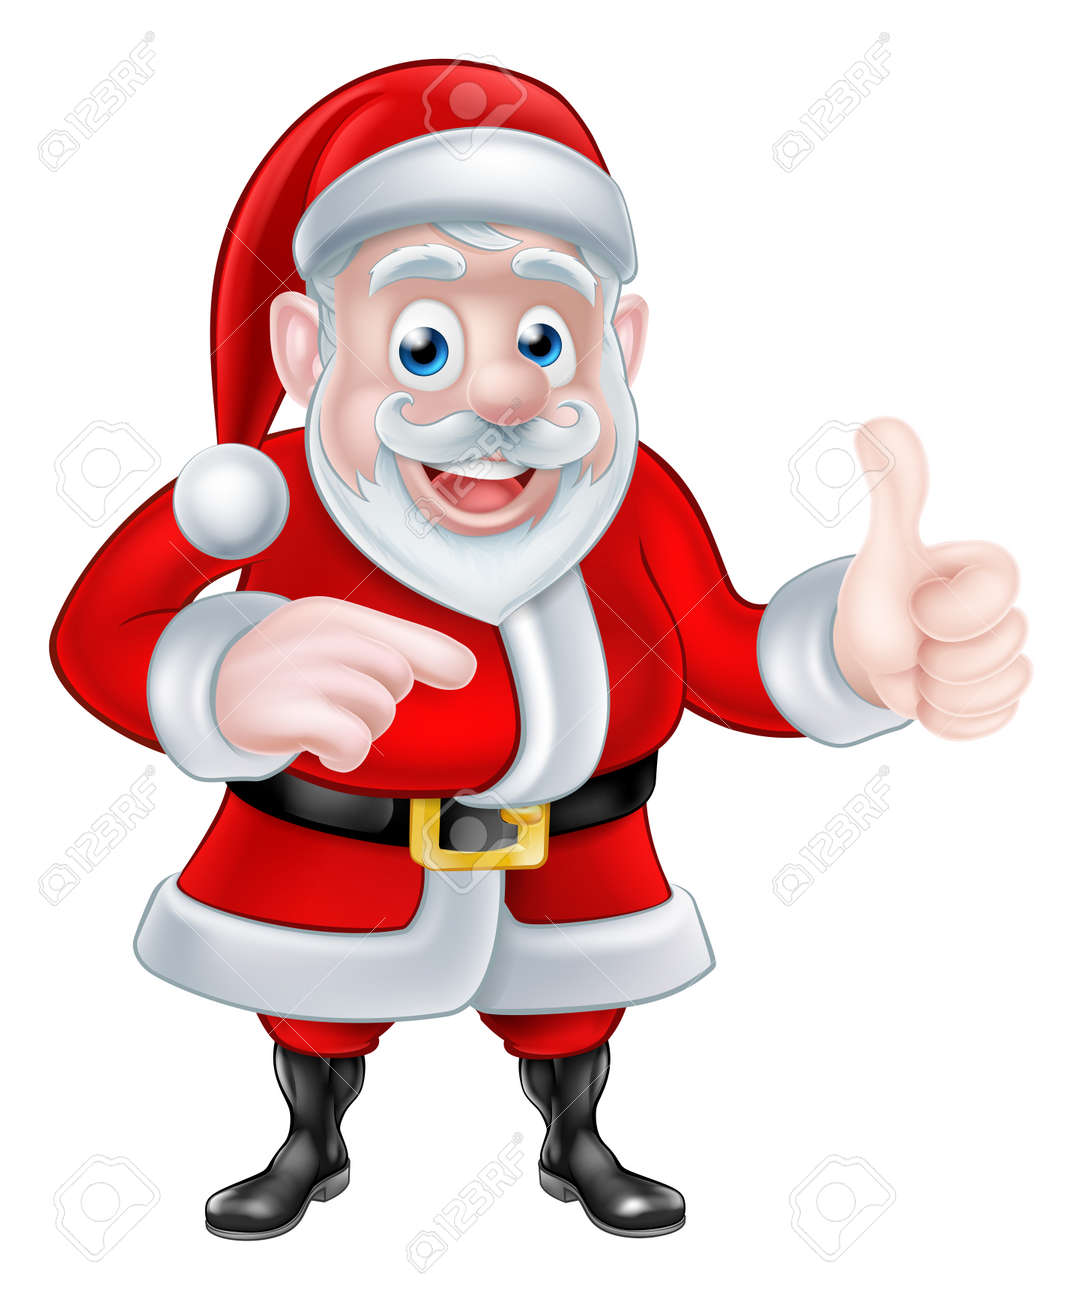 Christmas Images Cartoon.A Christmas Cartoon Illustration Of Santa Claus Pointing And